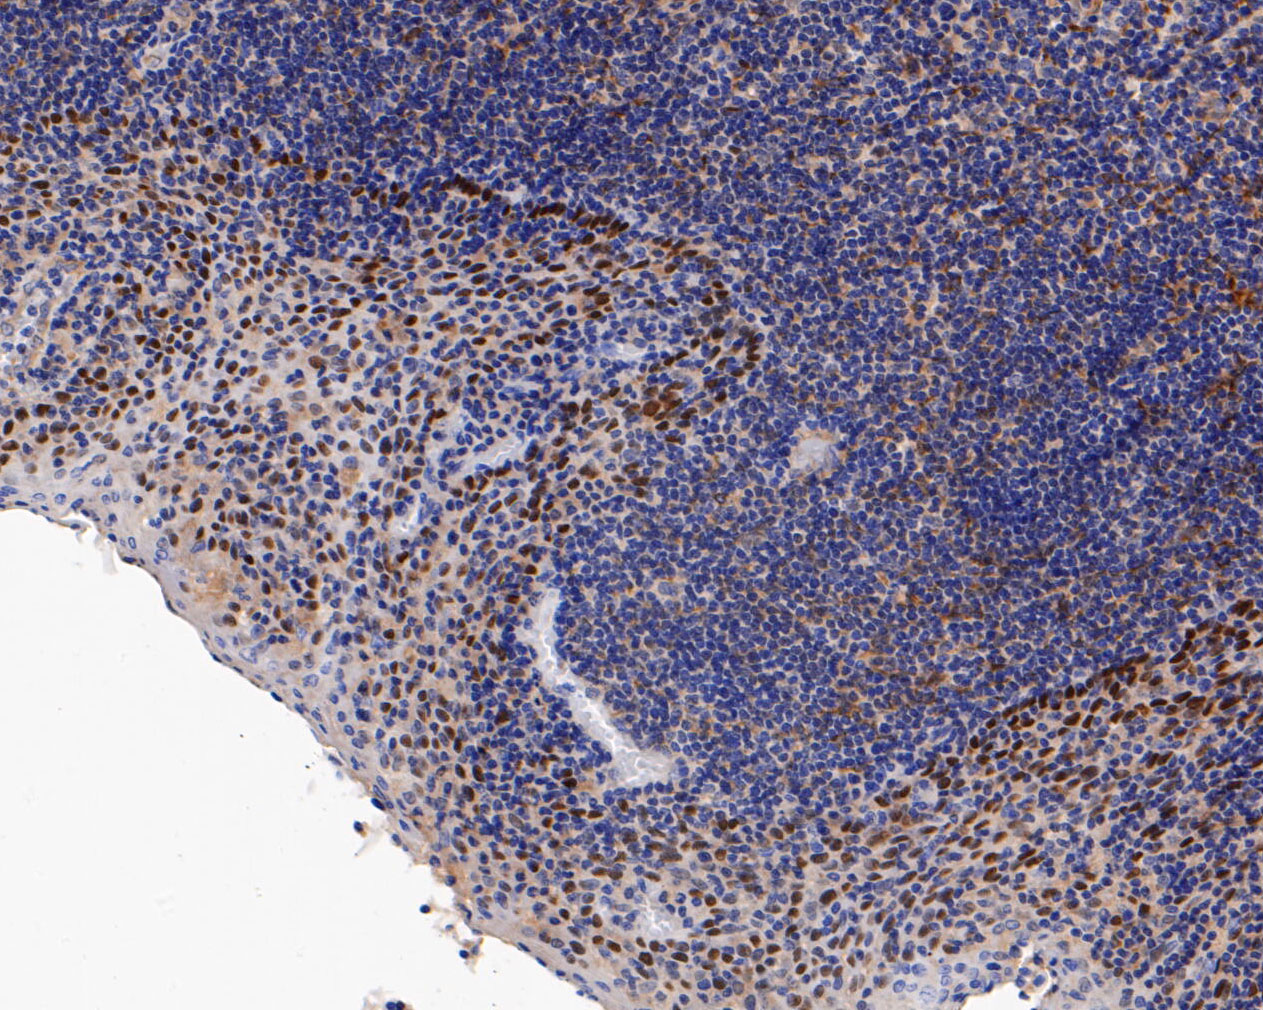 Immunohistochemical analysis of paraffin-embedded human tonsil tissue using anti-p63 antibody. The section was pre-treated using heat mediated antigen retrieval with sodium citrate buffer (pH 6.0) for 20 minutes. The tissues were blocked in 5% BSA for 30 minutes at room temperature, washed with ddH2O and PBS, and then probed with the primary antibody (ET1610-44, 1/50) for 30 minutes at room temperature. The detection was performed using an HRP conjugated compact polymer system. DAB was used as the chromogen. Tissues were counterstained with hematoxylin and mounted with DPX.